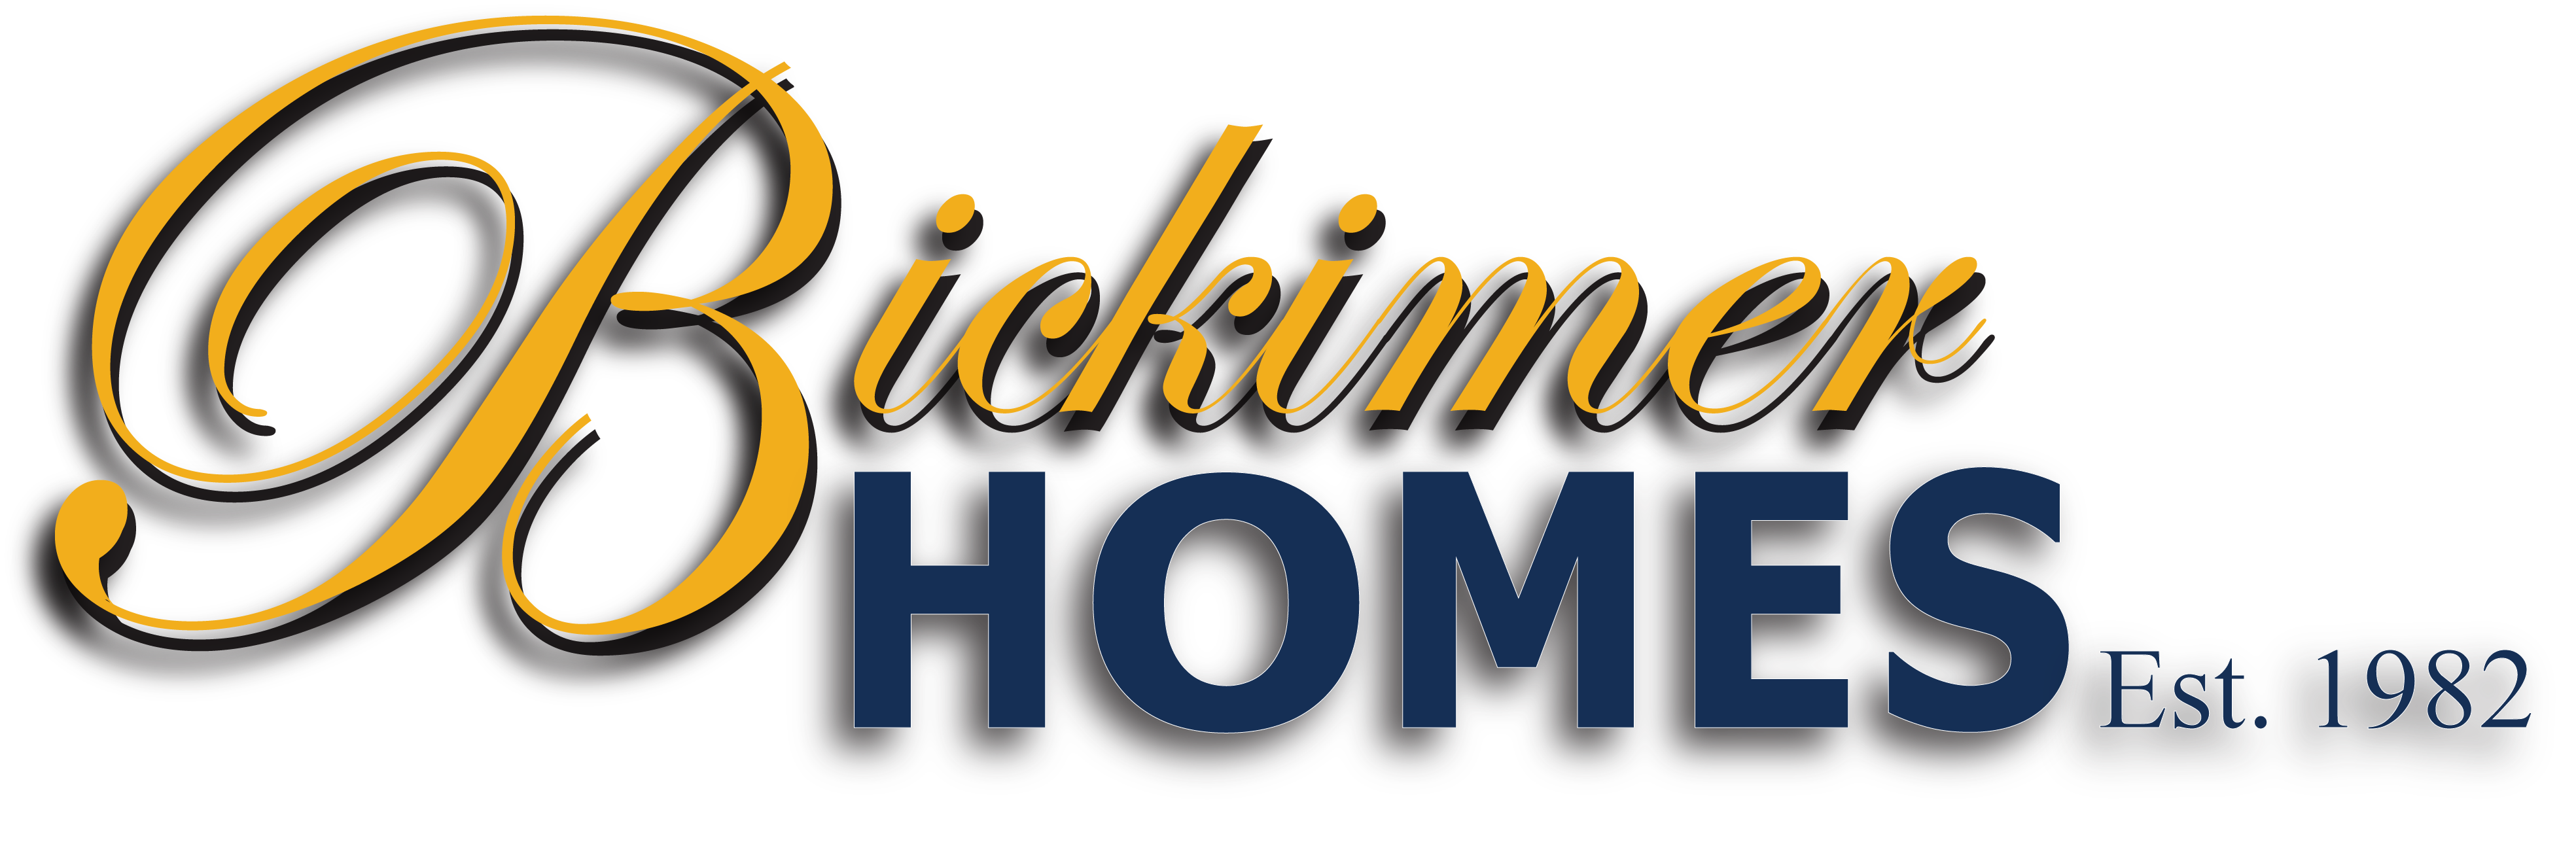 Bickimer Homes Blue